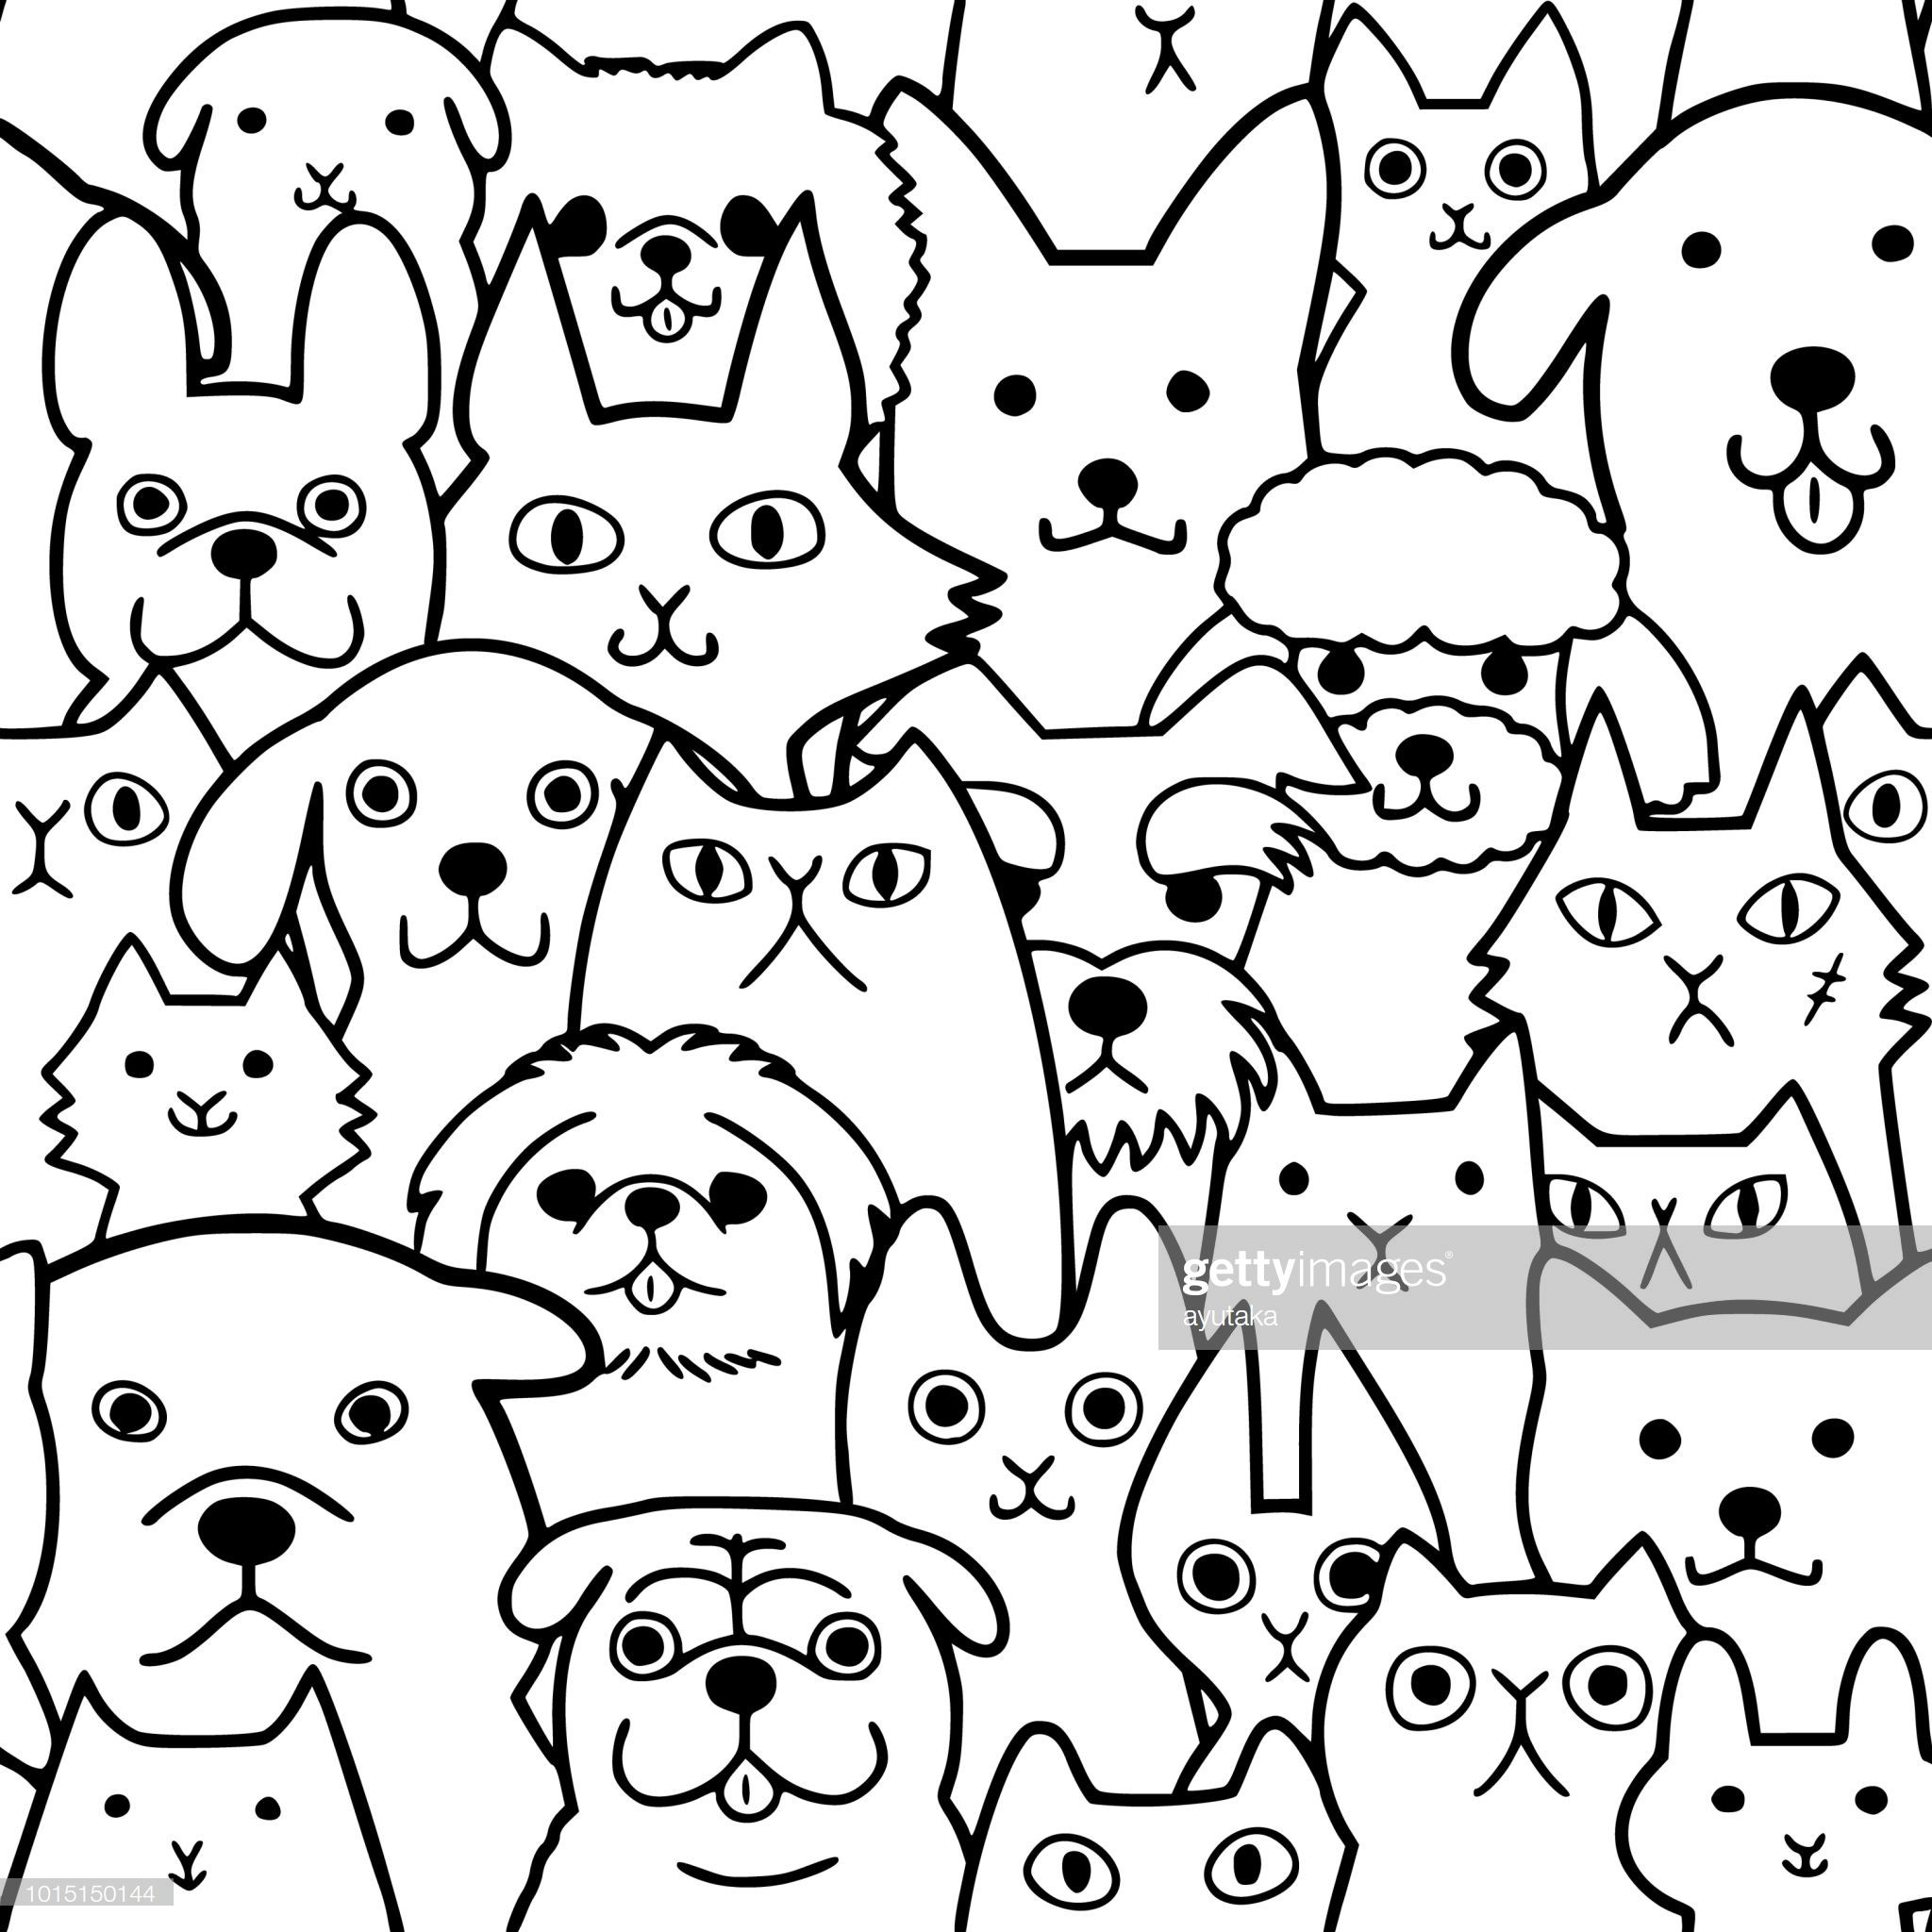 Seamless Doodle Dogs And Cats Faces Line Art Background Dog Line Art Line Art Vector Doodle Dog